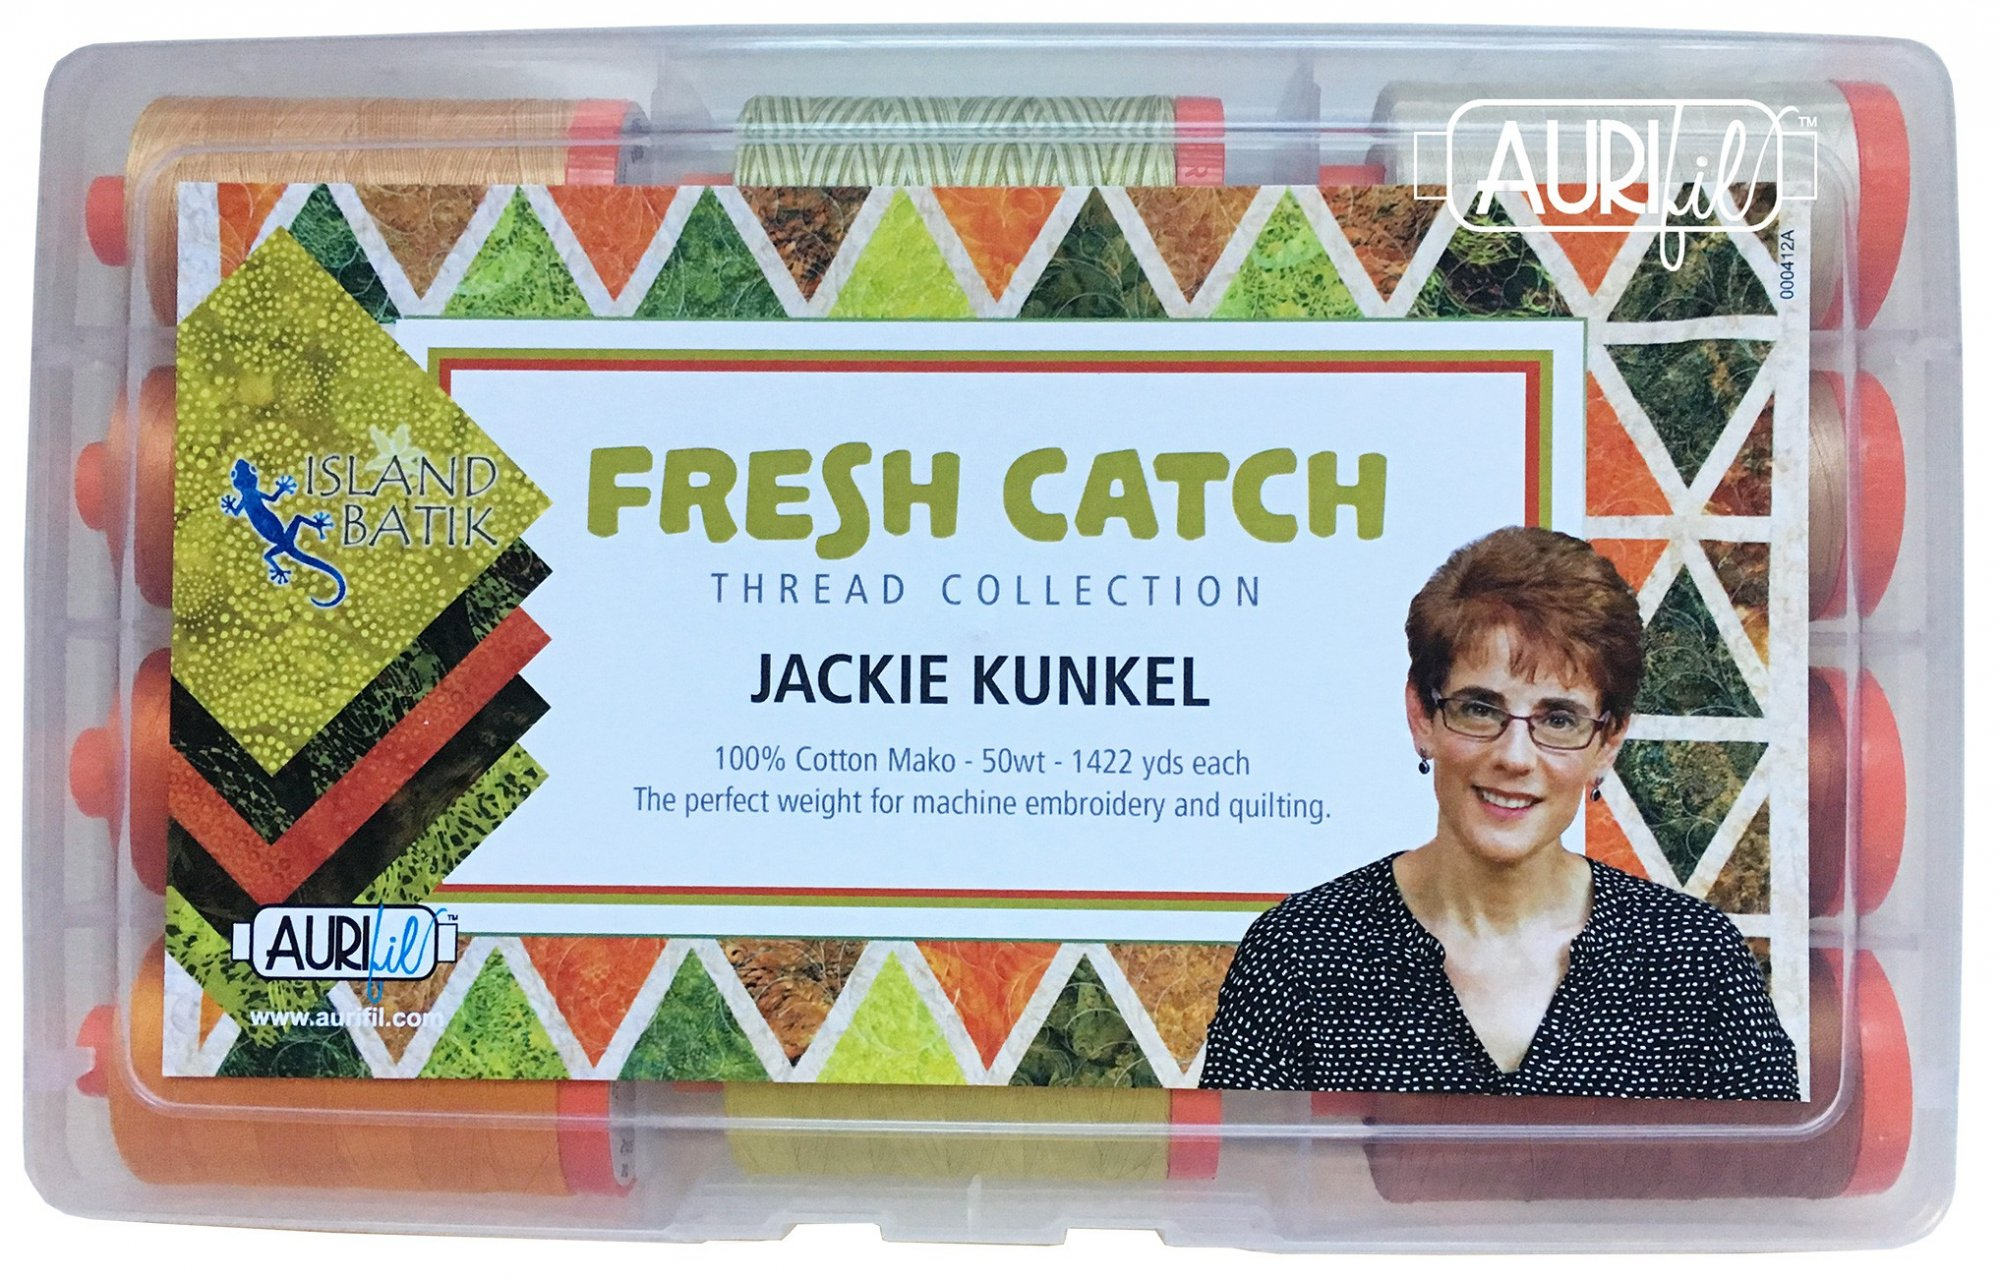 Fresh Catch Collection by Jackie Kunkel